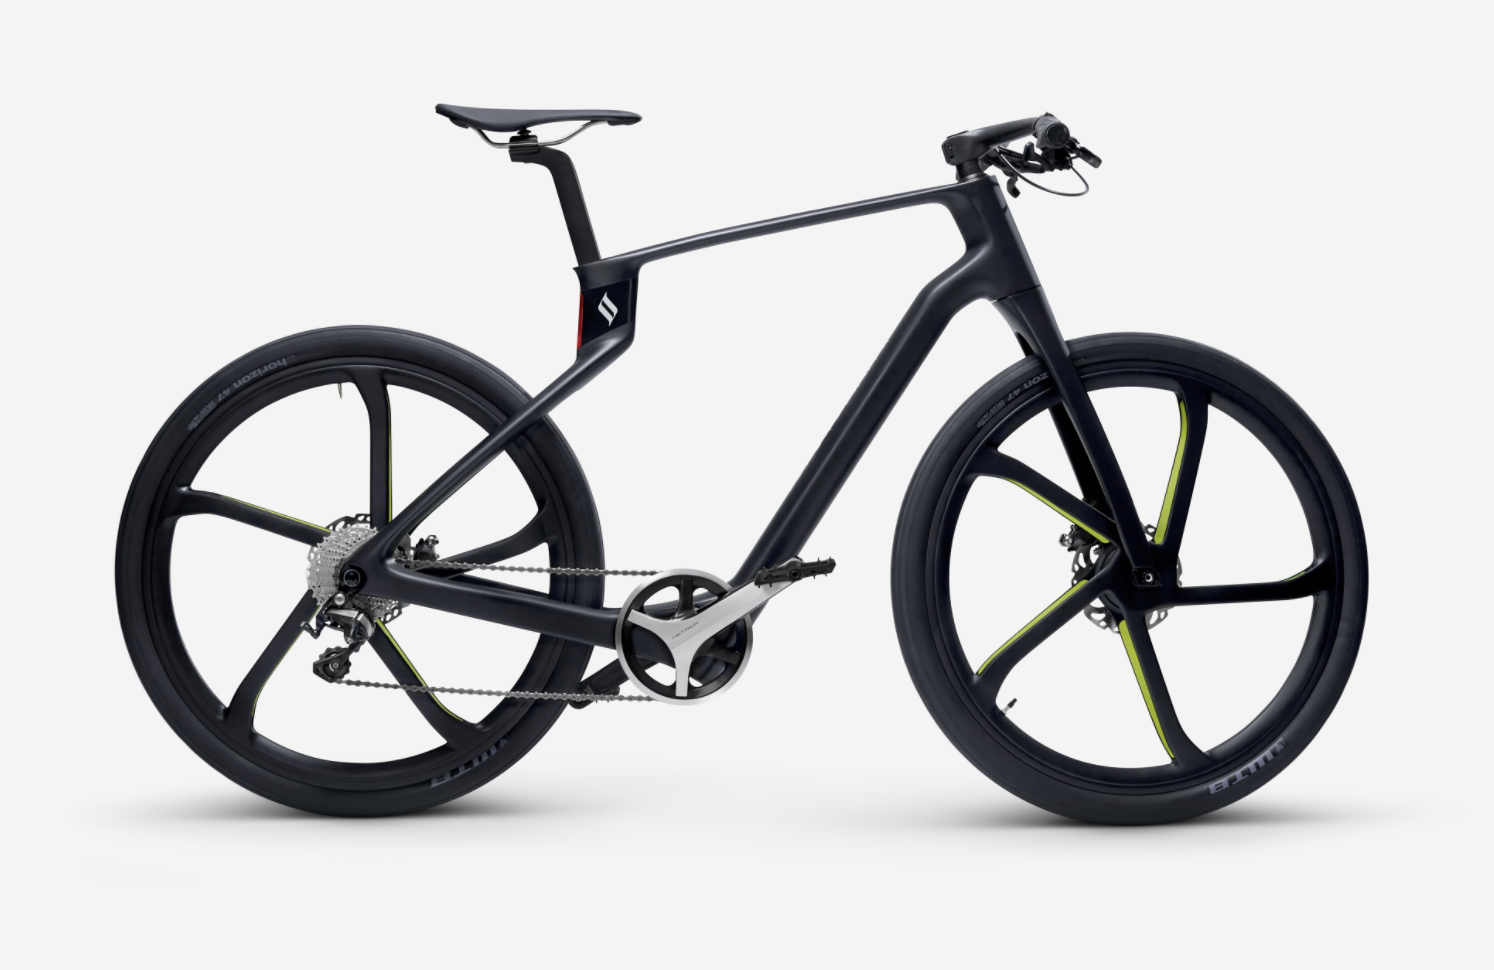 This 3D-Printed Bike Has Crowdfunded $3.4 Million